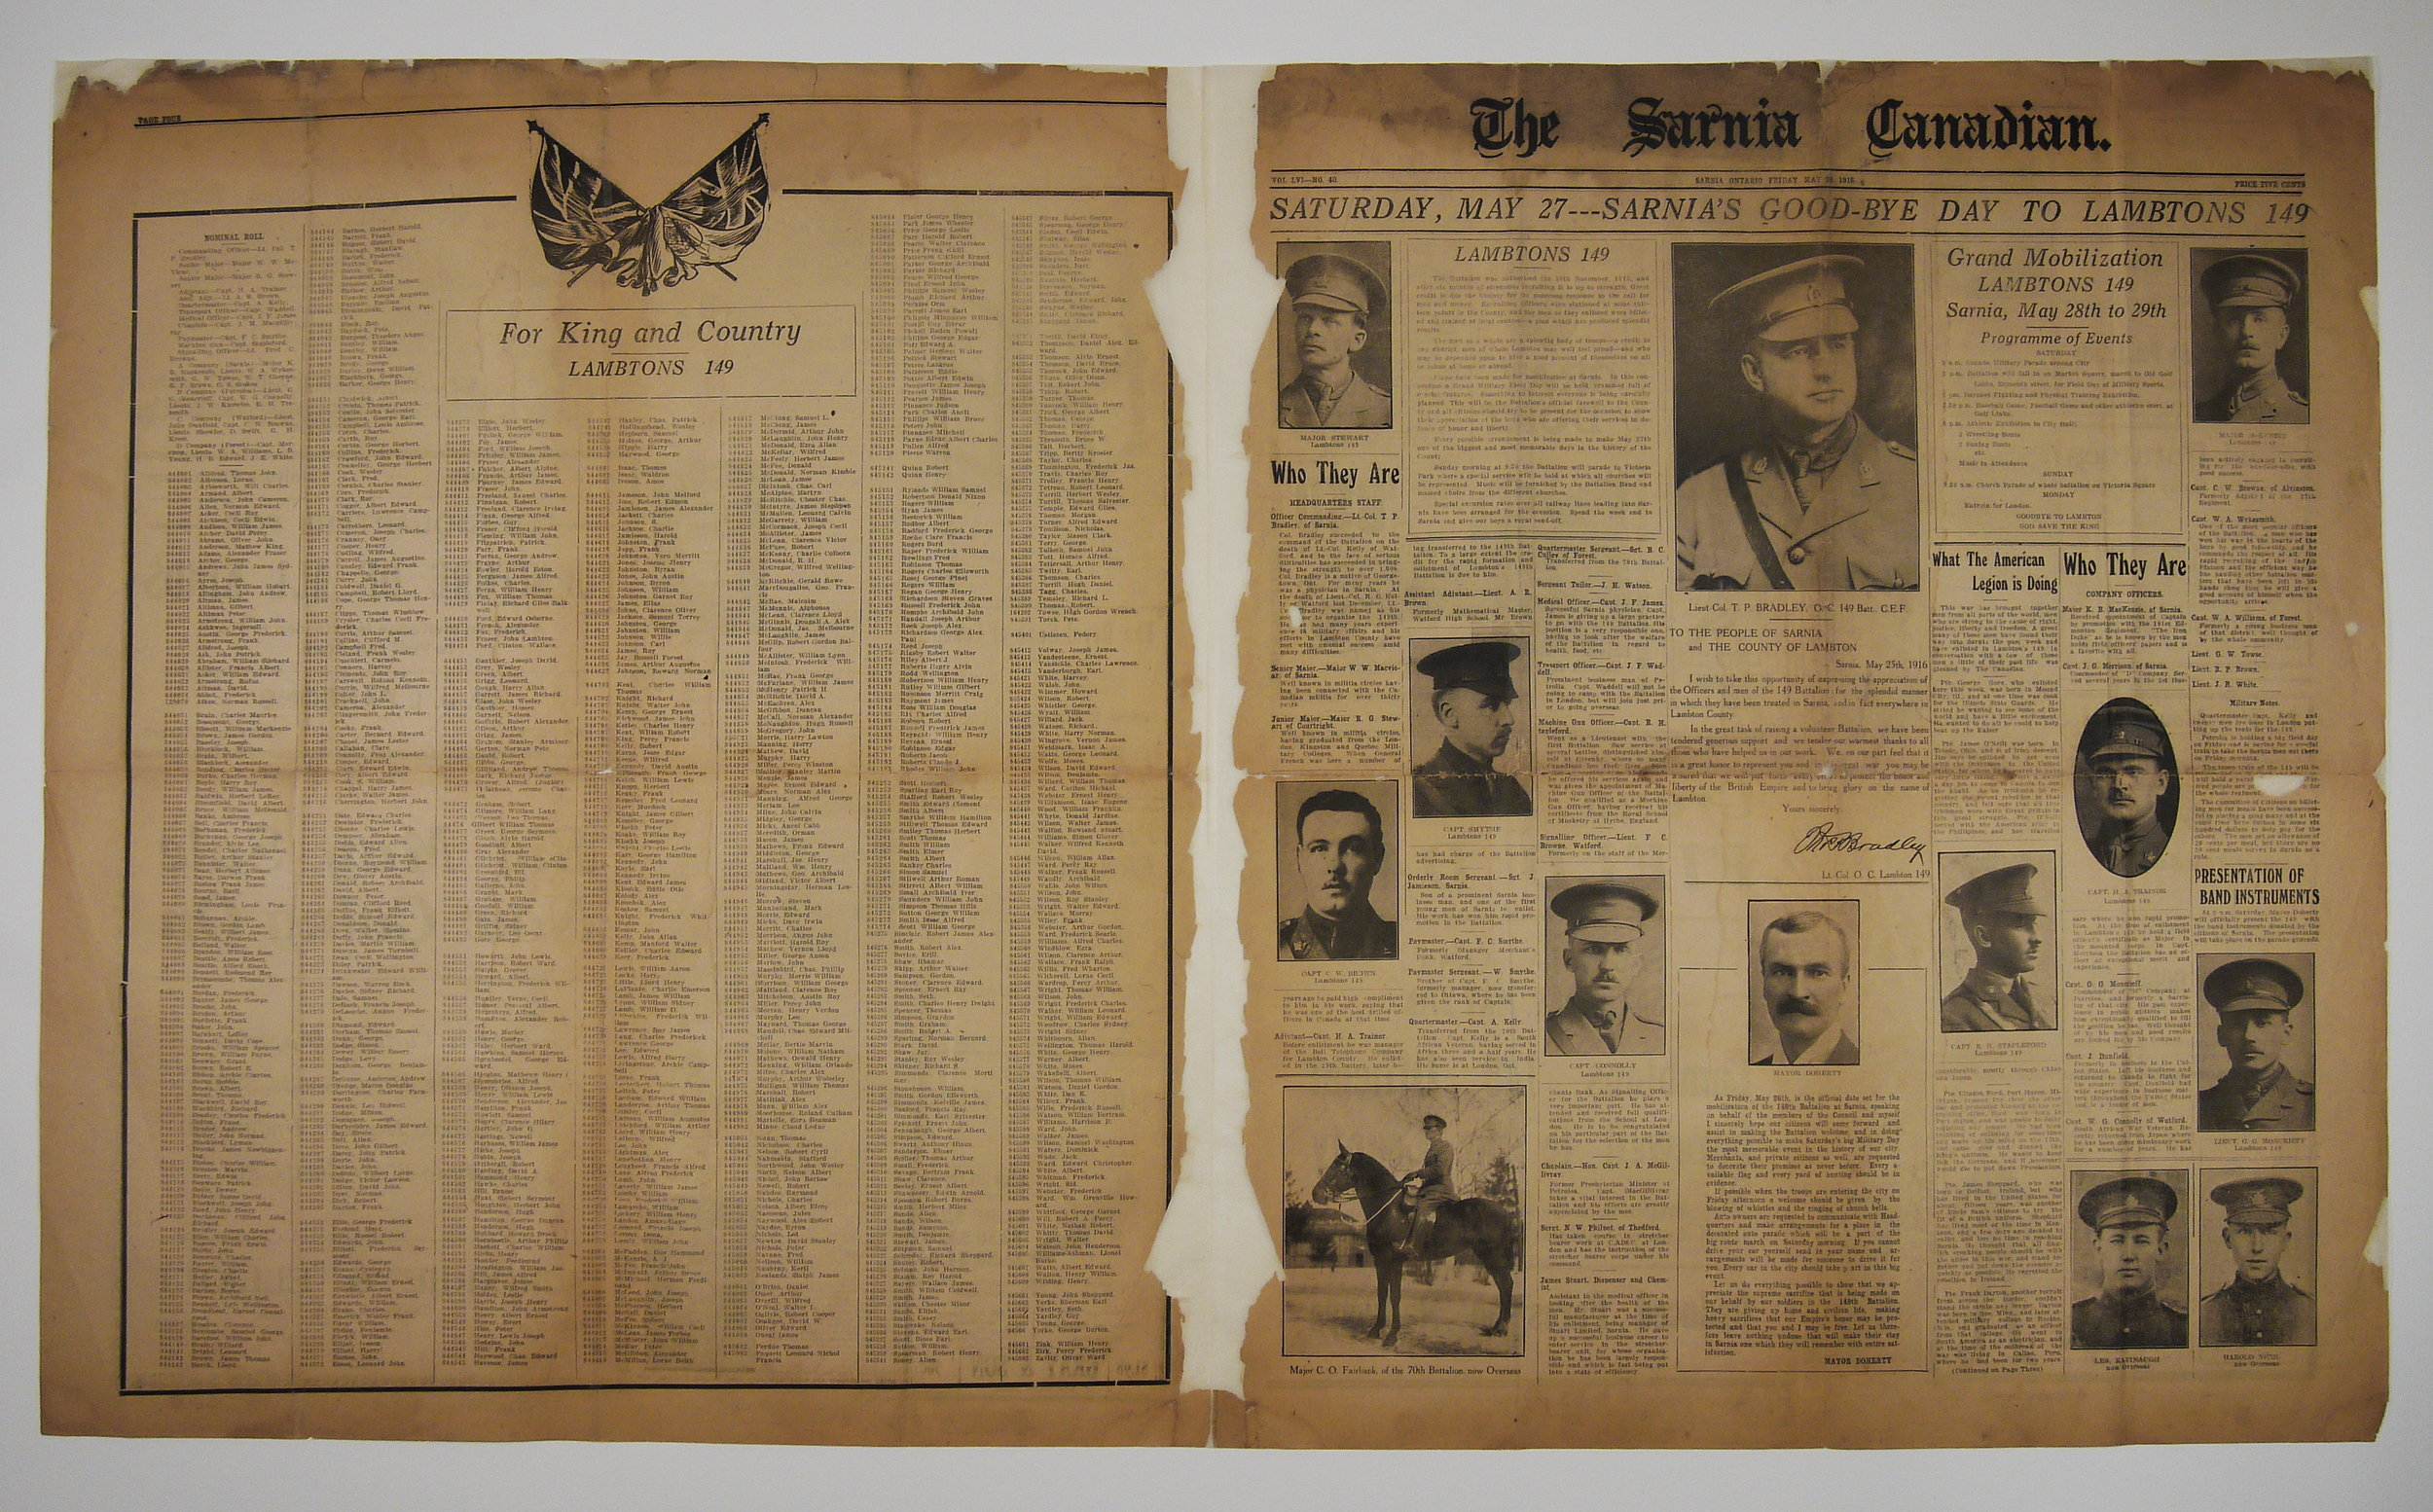 The newspaper spread after repair and restoration.